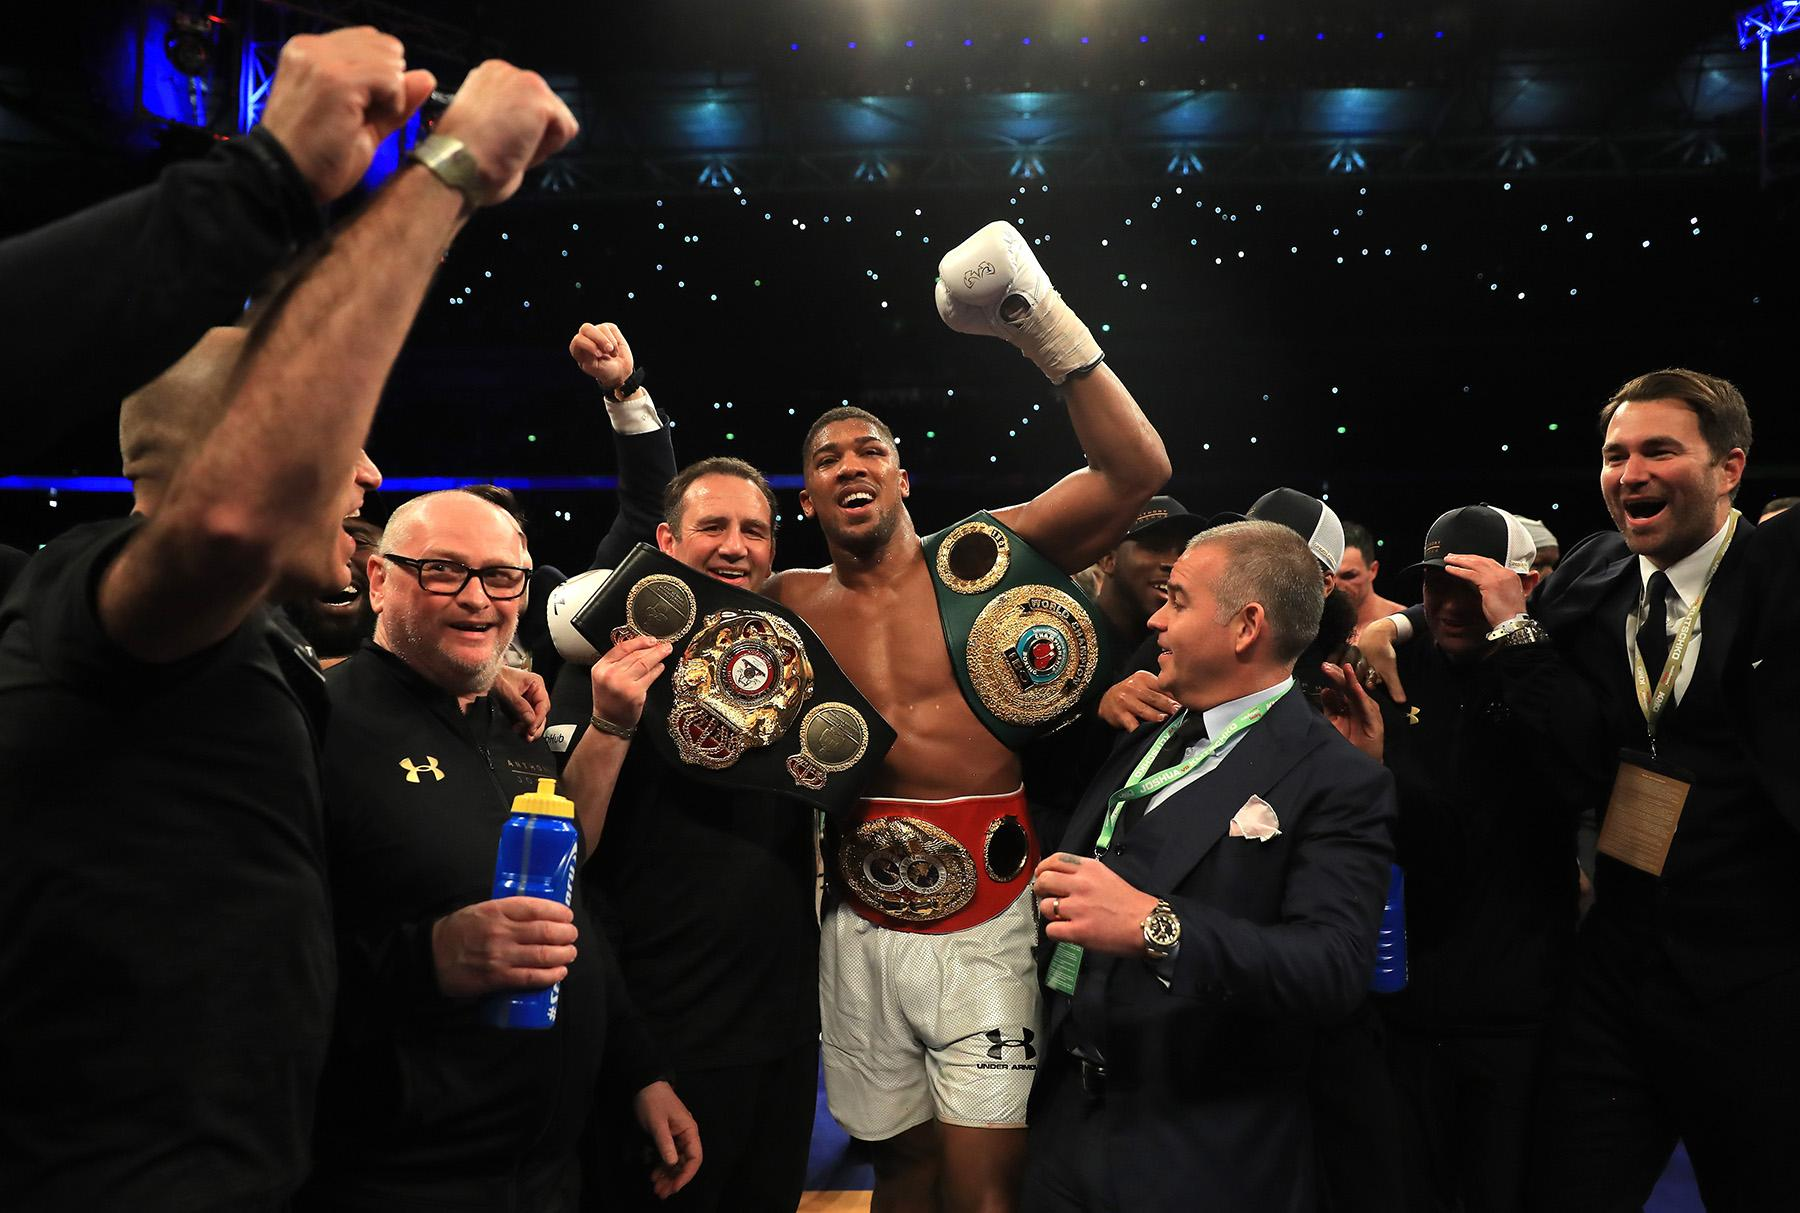 Anthony Joshua defeated Wladimir Klitschko in the IBF, WBA and IBO Heavyweight World Title bout at Wembley on April 29 2017